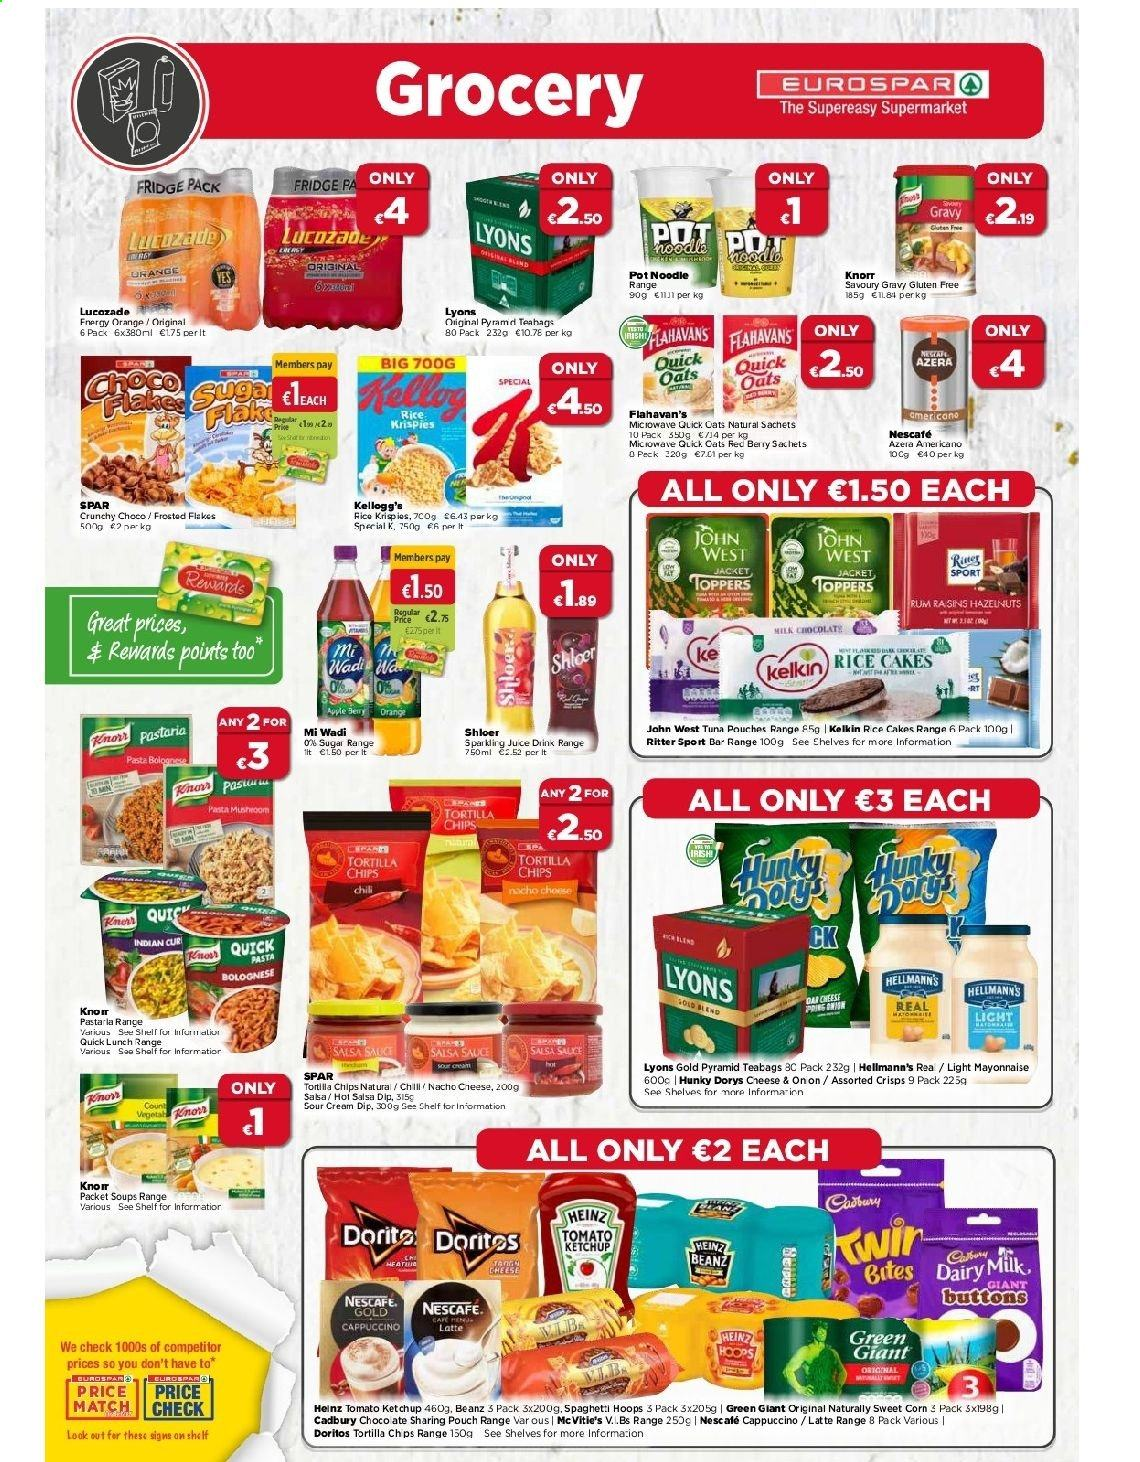 EUROSPAR offer  - 12.11.2020 - 2.12.2020 - Sales products - cappuccino, corn, cream, doritos, fa, mayonnaise, microwave, milk, refrigerator, rice, rum, shelves, sour cream, sugar, tortilla chips, tuna, heinz, jacket, ketchup, pot, quick, noodle, oats, chips, cheese, juice, salsa, pasta, berry, knorr, teabags, sweet, sauce, gluten free, nescafé, drink, orange, bites, tomato, teabag, fridge. Page 4.